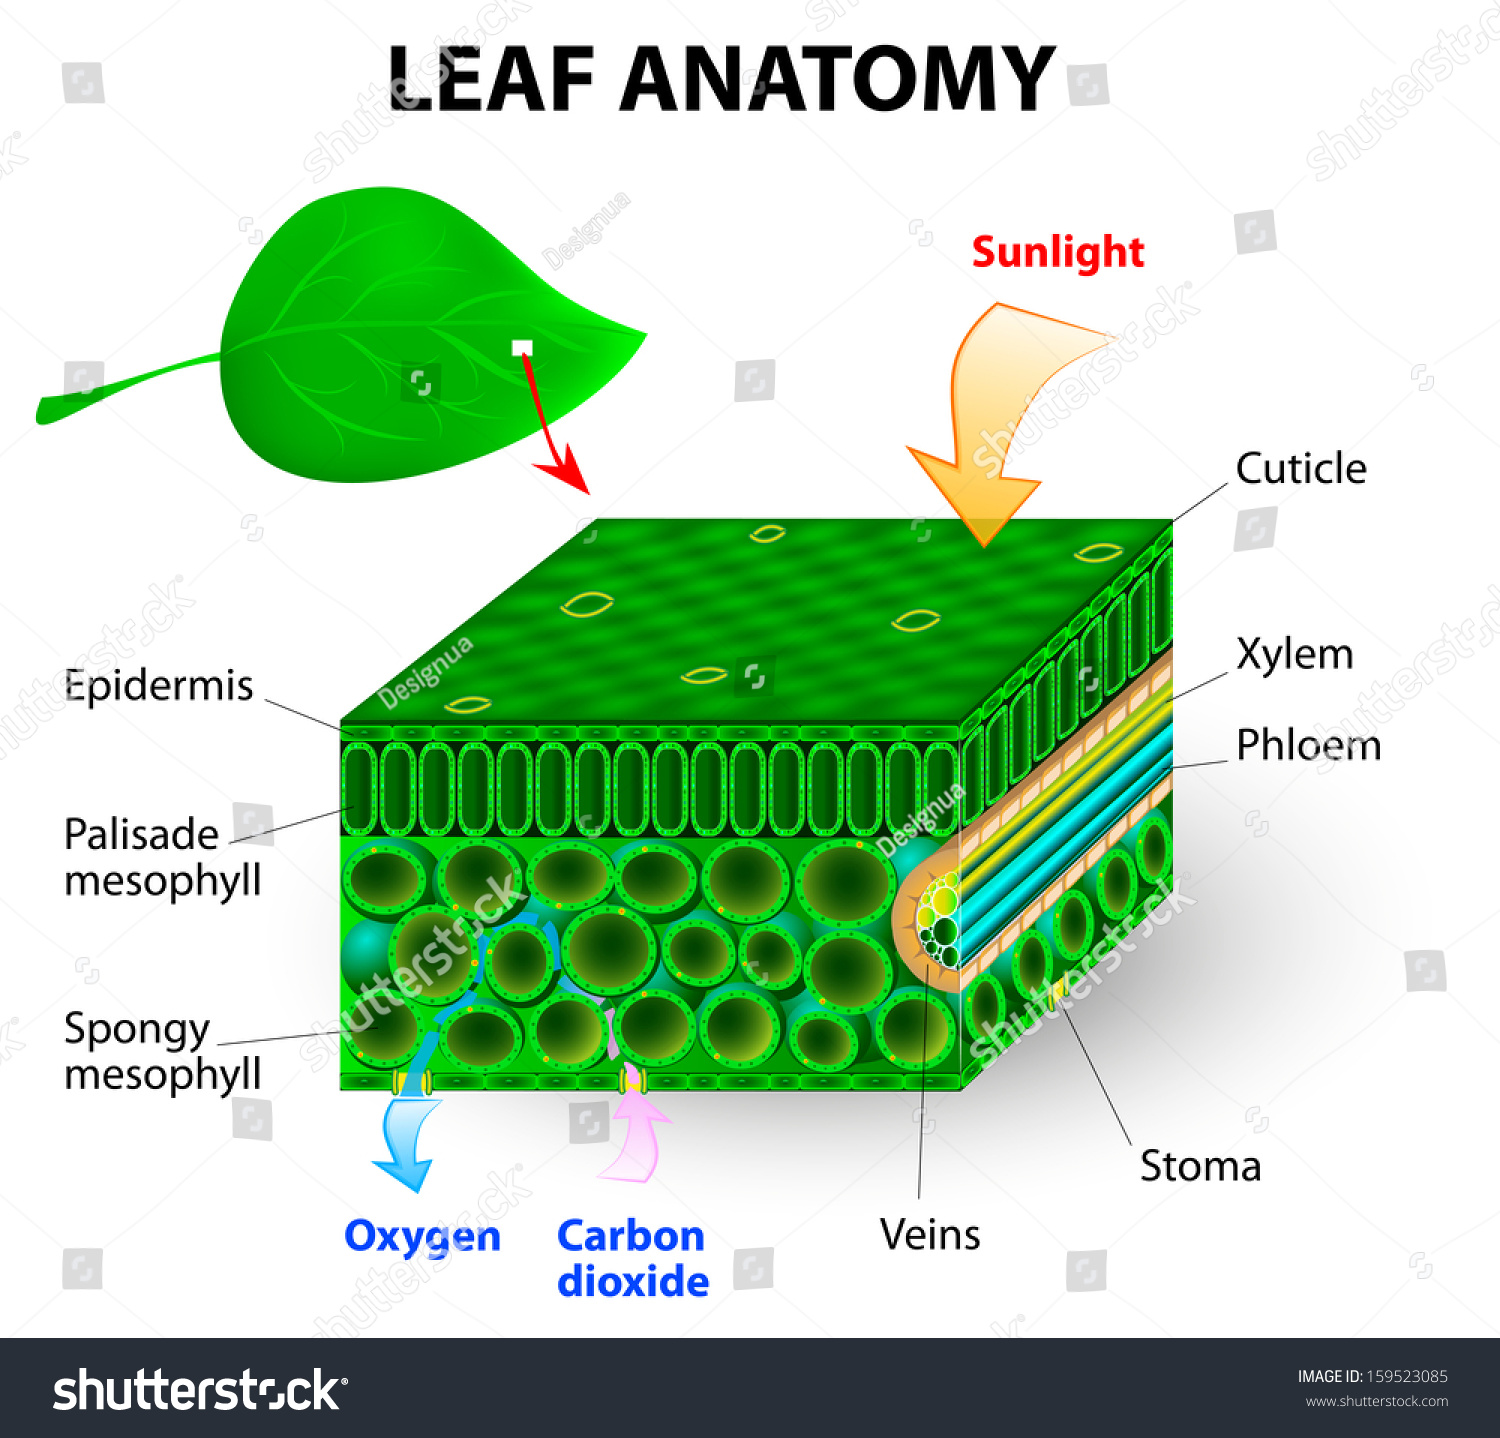 Anatomy Of A Leaf Diagram Search For Wiring Diagrams